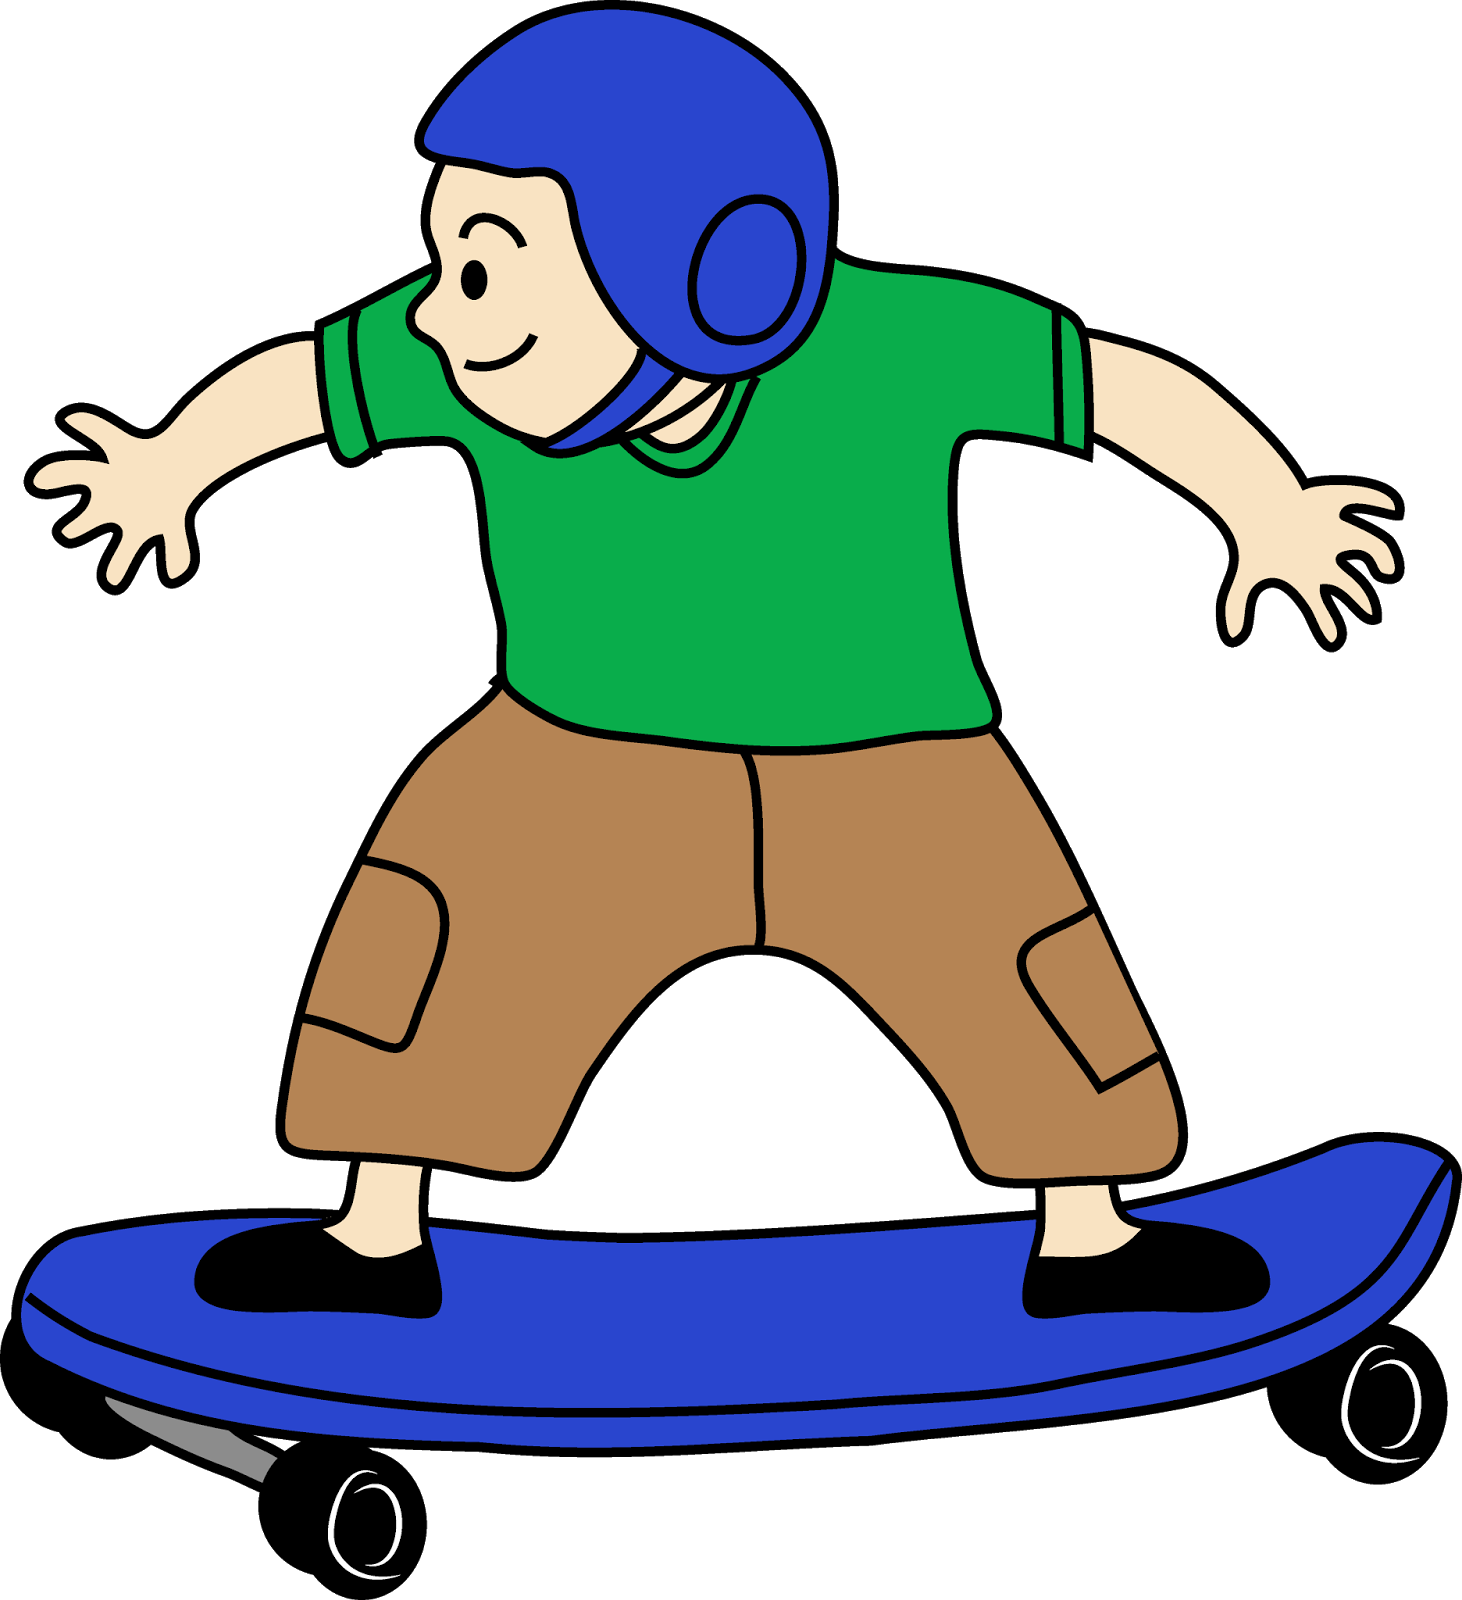 Skateboard clipart #3, Download drawings